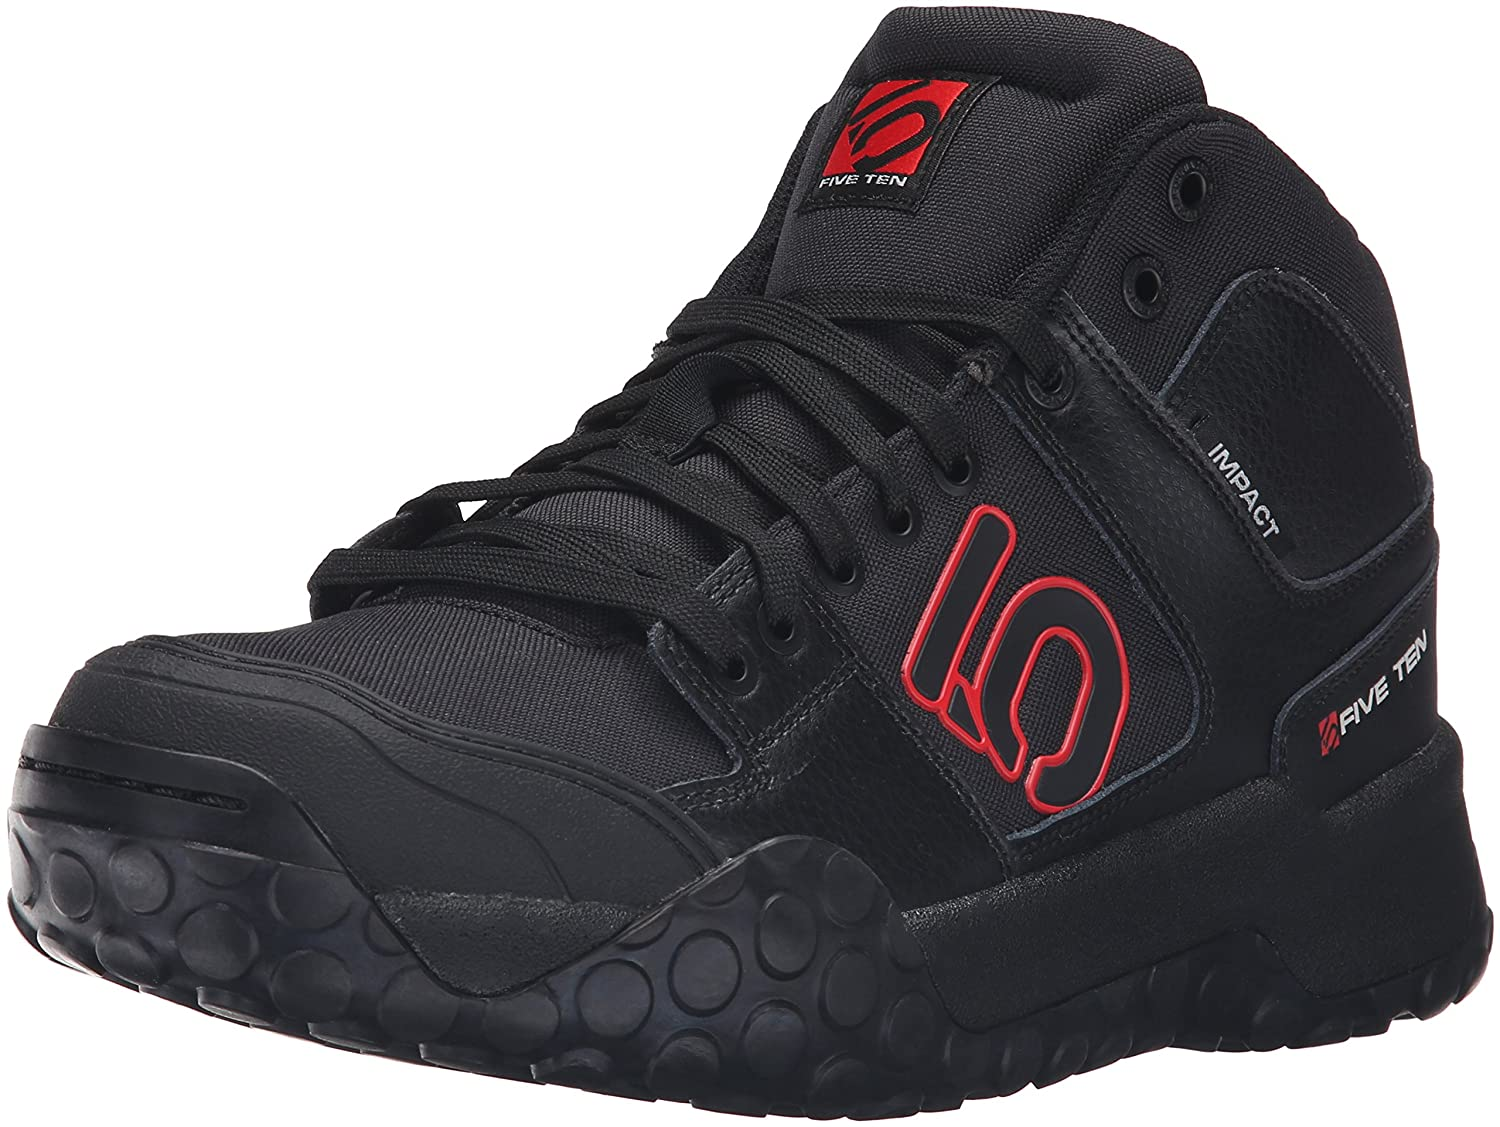 Five Ten MTB-Schuhe Impact High Schwarz Gr. 41.5